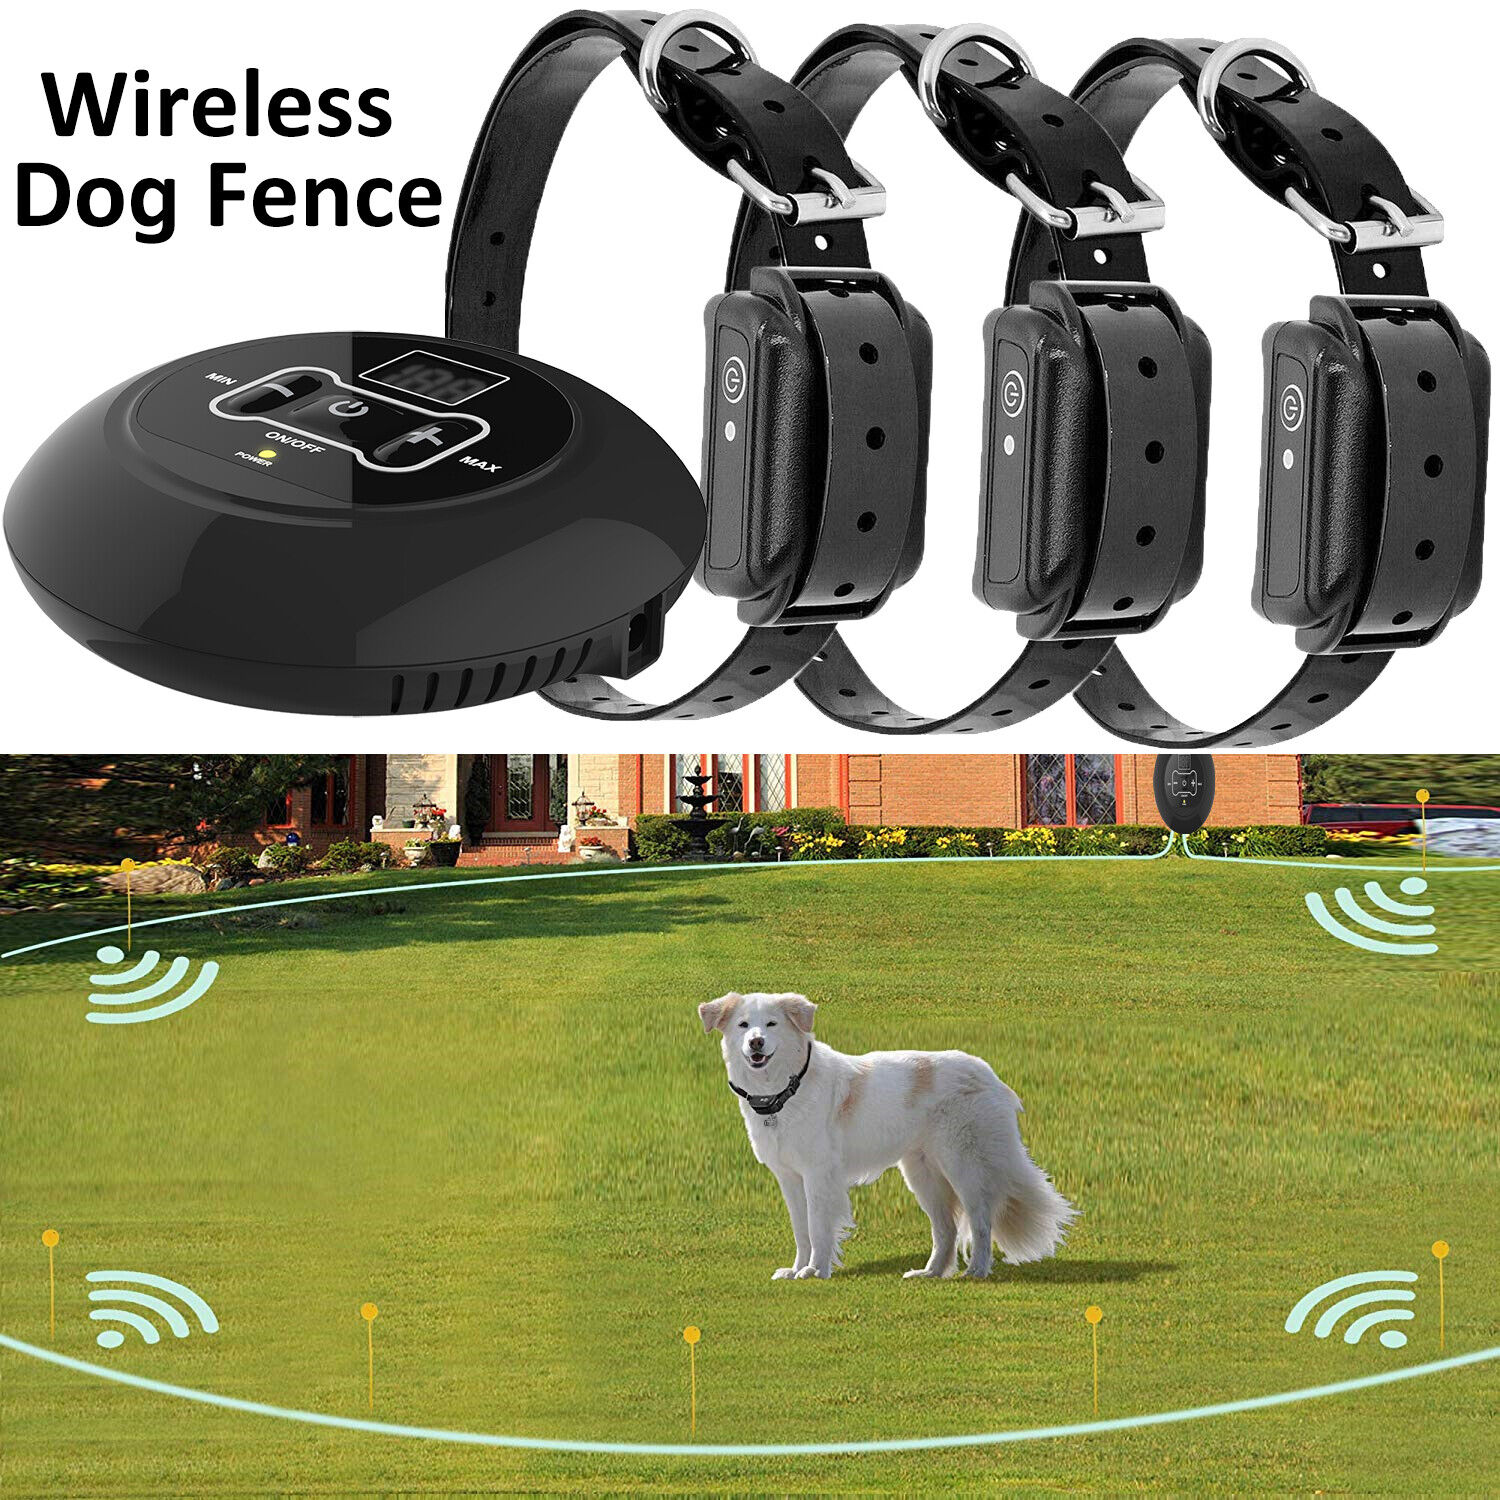 Купить Whizzohead - Wireless Electric Dog Fence Pet Containment System Shock Collars For 1/2/3 Dogs